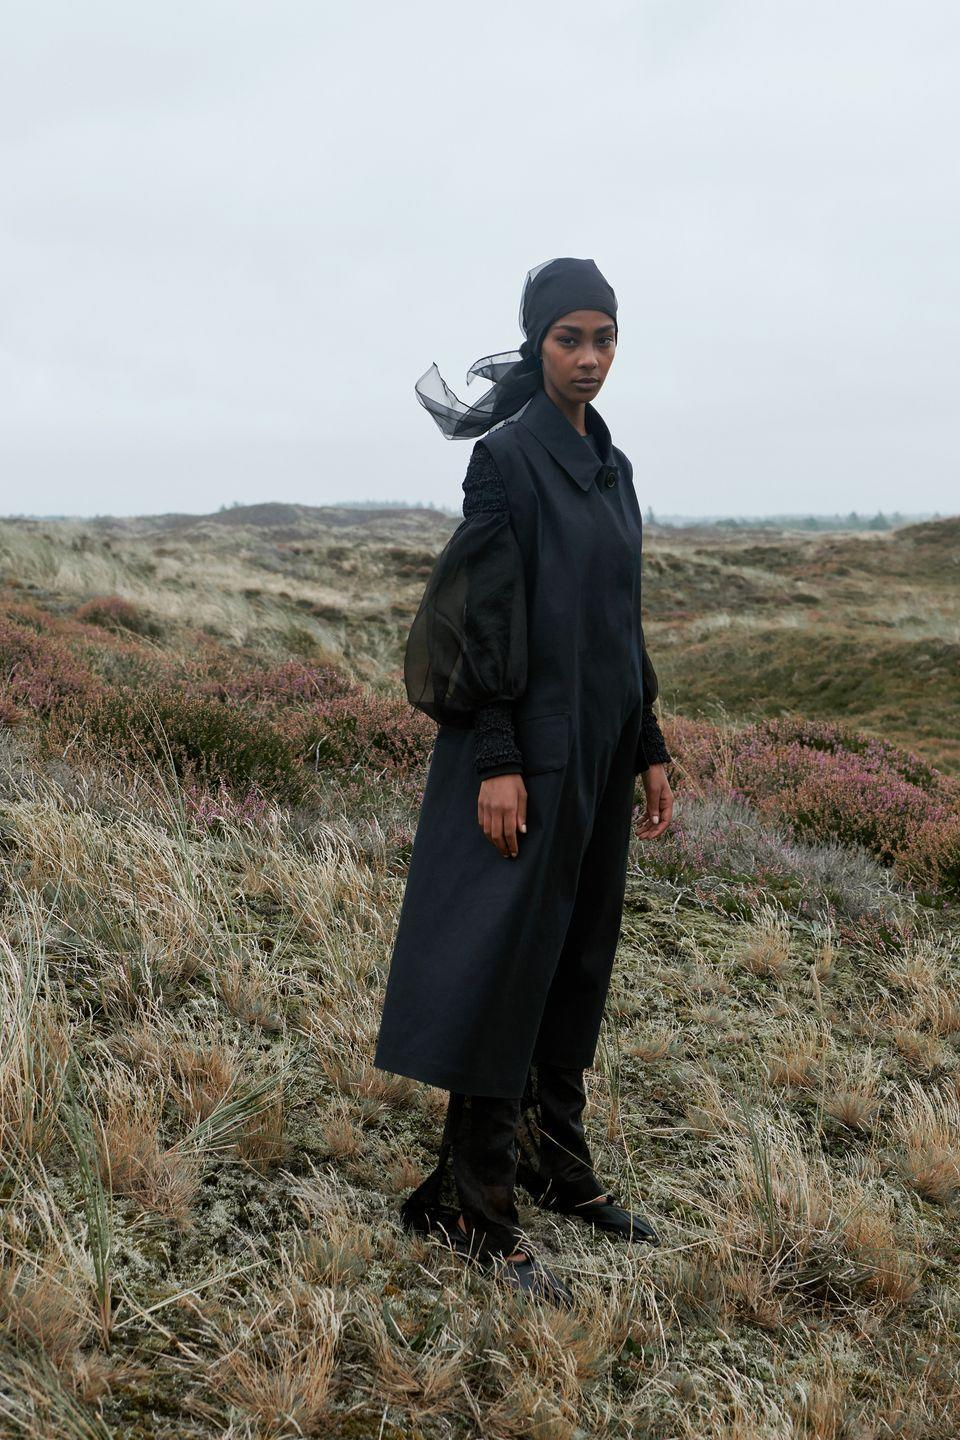 "<p>Cecilie Bahnsen is a sort of intellectual romantic, a designer who leans into an ethereal beauty while imbuing it with something steady and enduring. For this collection, the Copenhagen-based designer had ""a woman on a journey across a landscape"" in mind, and was inspired by Hashimoto Shoko's '70s black-and-white portraits of Goze musicians, James Turrell's immersive light installations, and a P.S. Krøyer painting of a summer night by the sea in Denmark. These weren't just esoteric ideas: The Turrell colors showed up in bright pink and green pieces. But the collection was mostly black and white, which calls to mind the black outfits worn by the blind Japanese women musicians in the photographs and the dreamy white gowns of two women walking on the beach in Krøyer's painting. The looks were all a bit dreamy, like they might float off if the breeze hit just right. —<em>Kerry Pieri</em><em><br></em></p>"